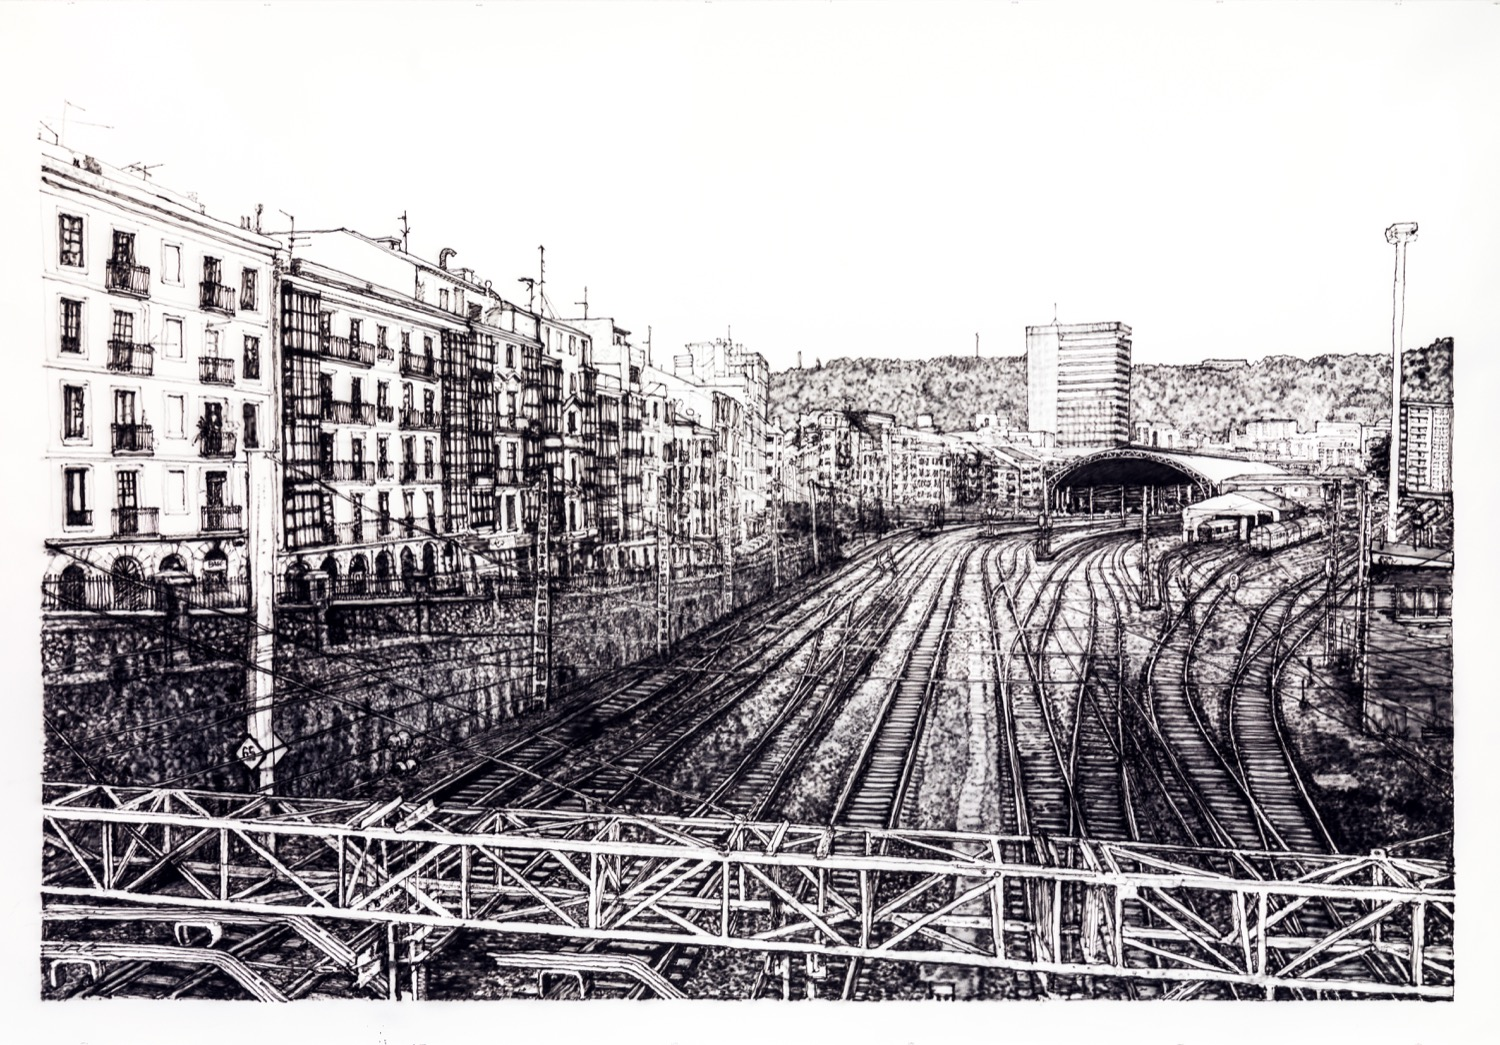 Abando. Ink on paper, 280 x 196 cm, 2020